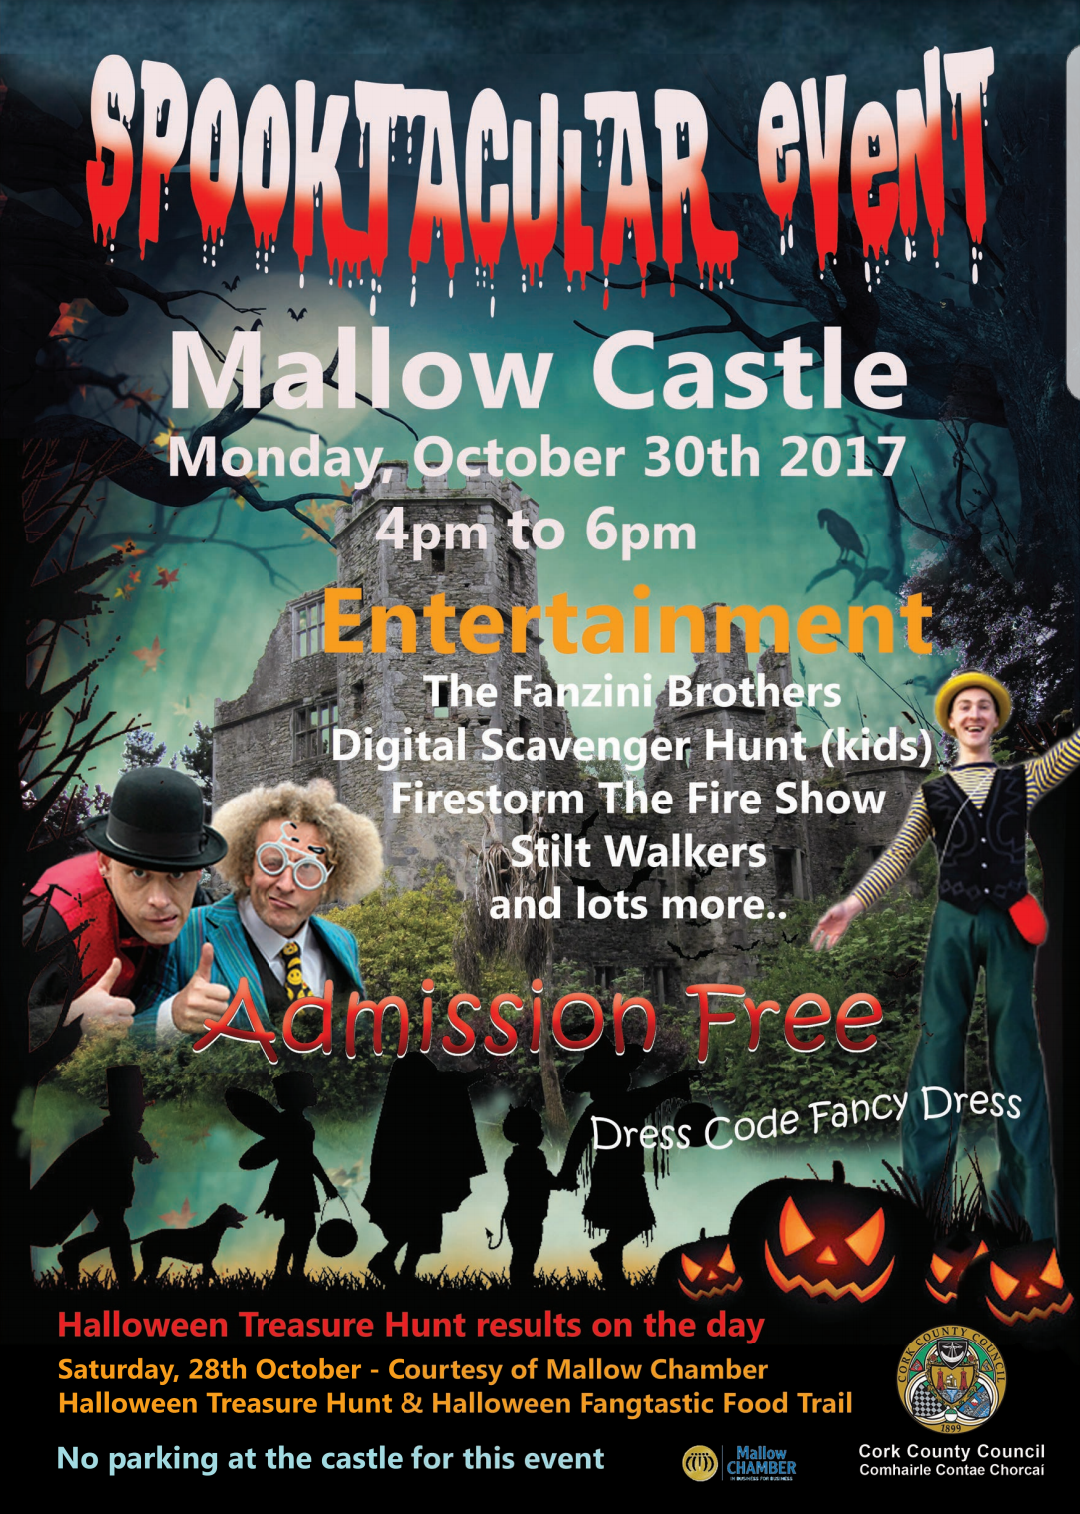 Halloween Spooktacular Event at Mallow Castle – Monday 30th October 4-6pm